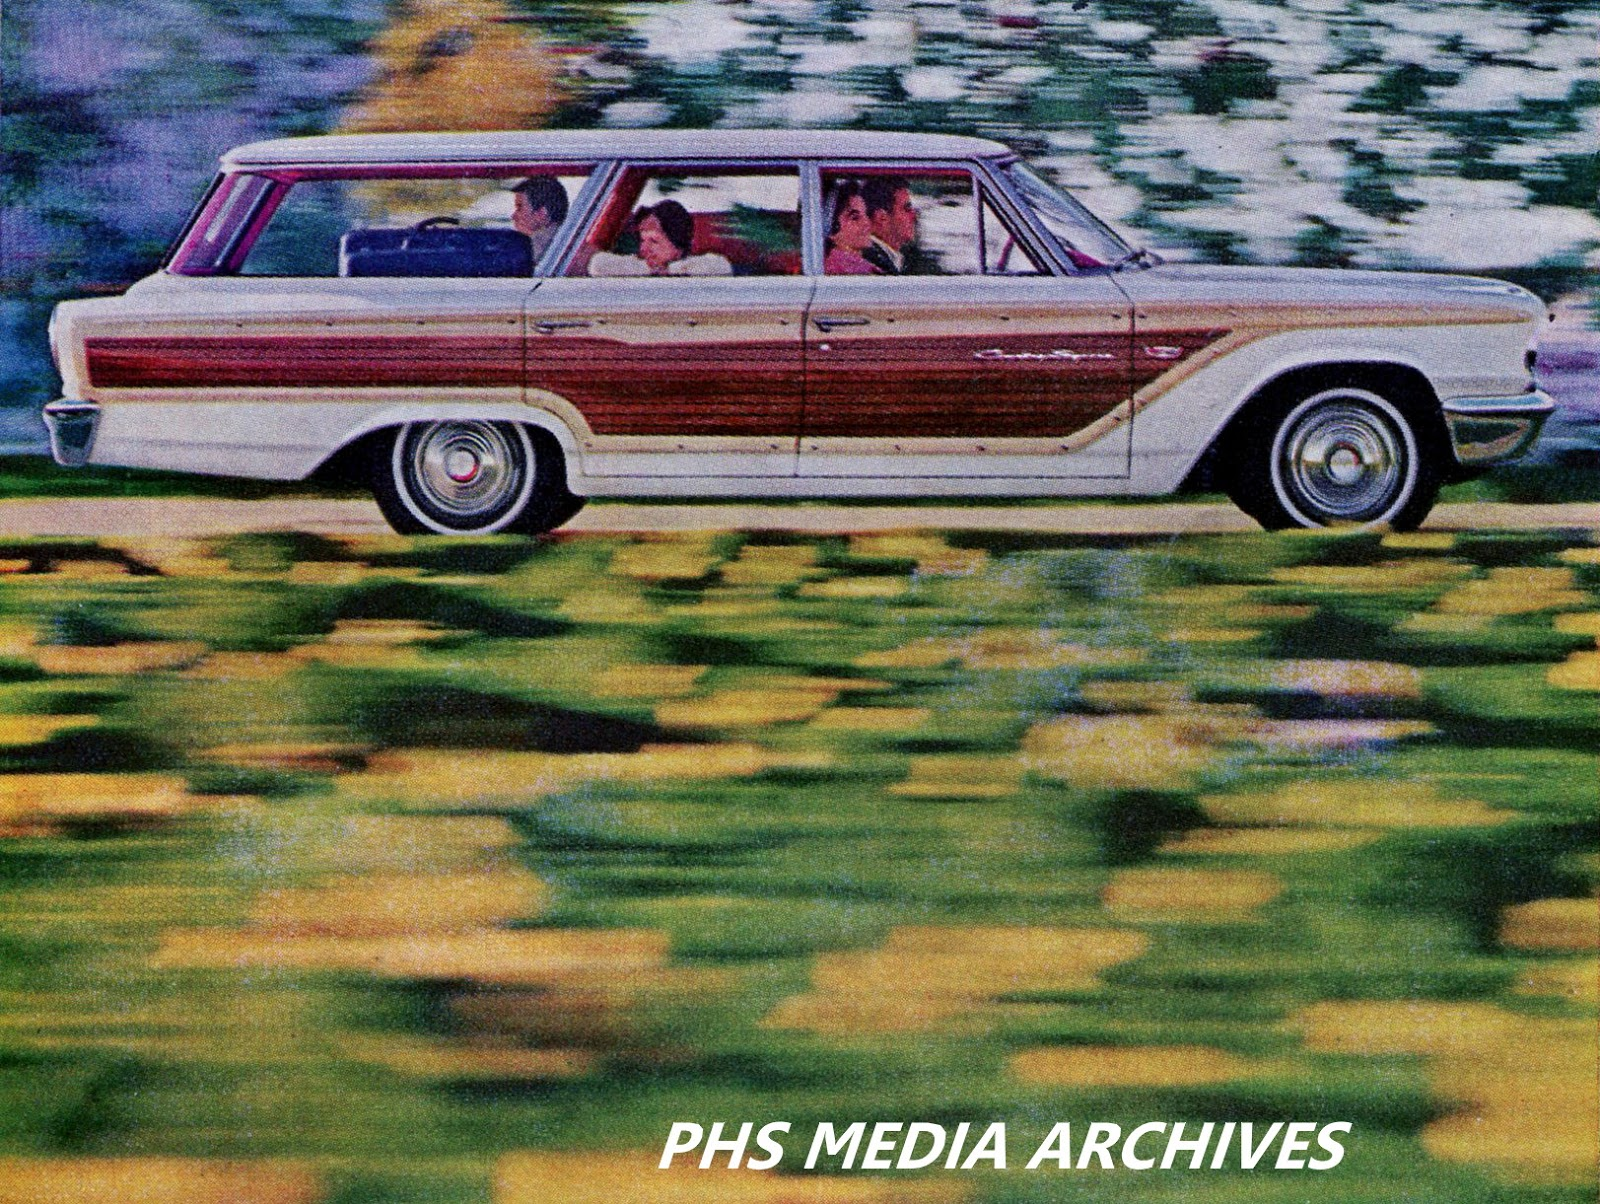 Ford Station Wagon Line Up 1963 Phscollectorcarworld 1960 Studebaker Lark Wiring Diagram The Big Galaxie Country Squire 9 Passenger In Colonial White With Red Interior Is Shown Here